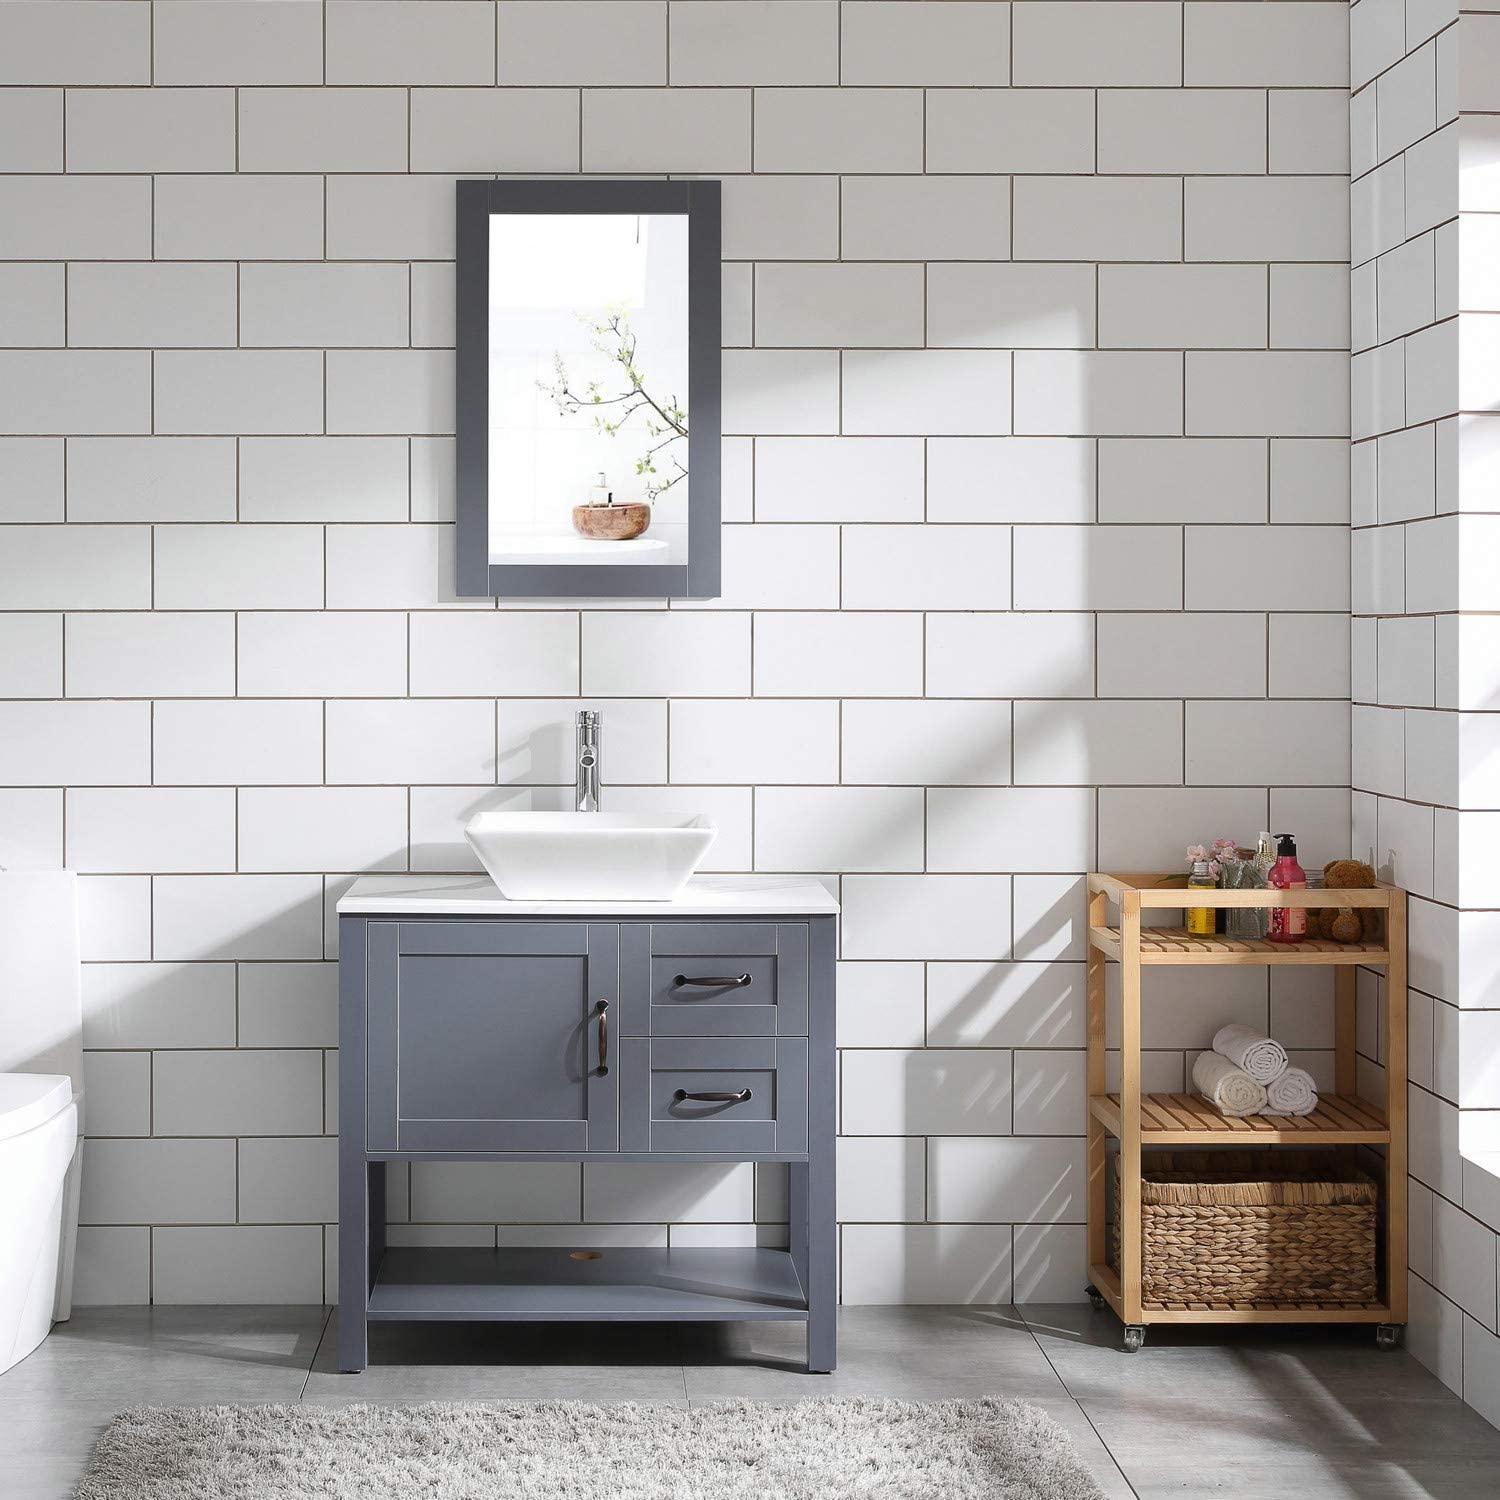 Amazon Com 30 Gray Bathroom Vanity And Sink Combo Marble Pattern Top W Mirror Faucet Drain Tools Home Improvement